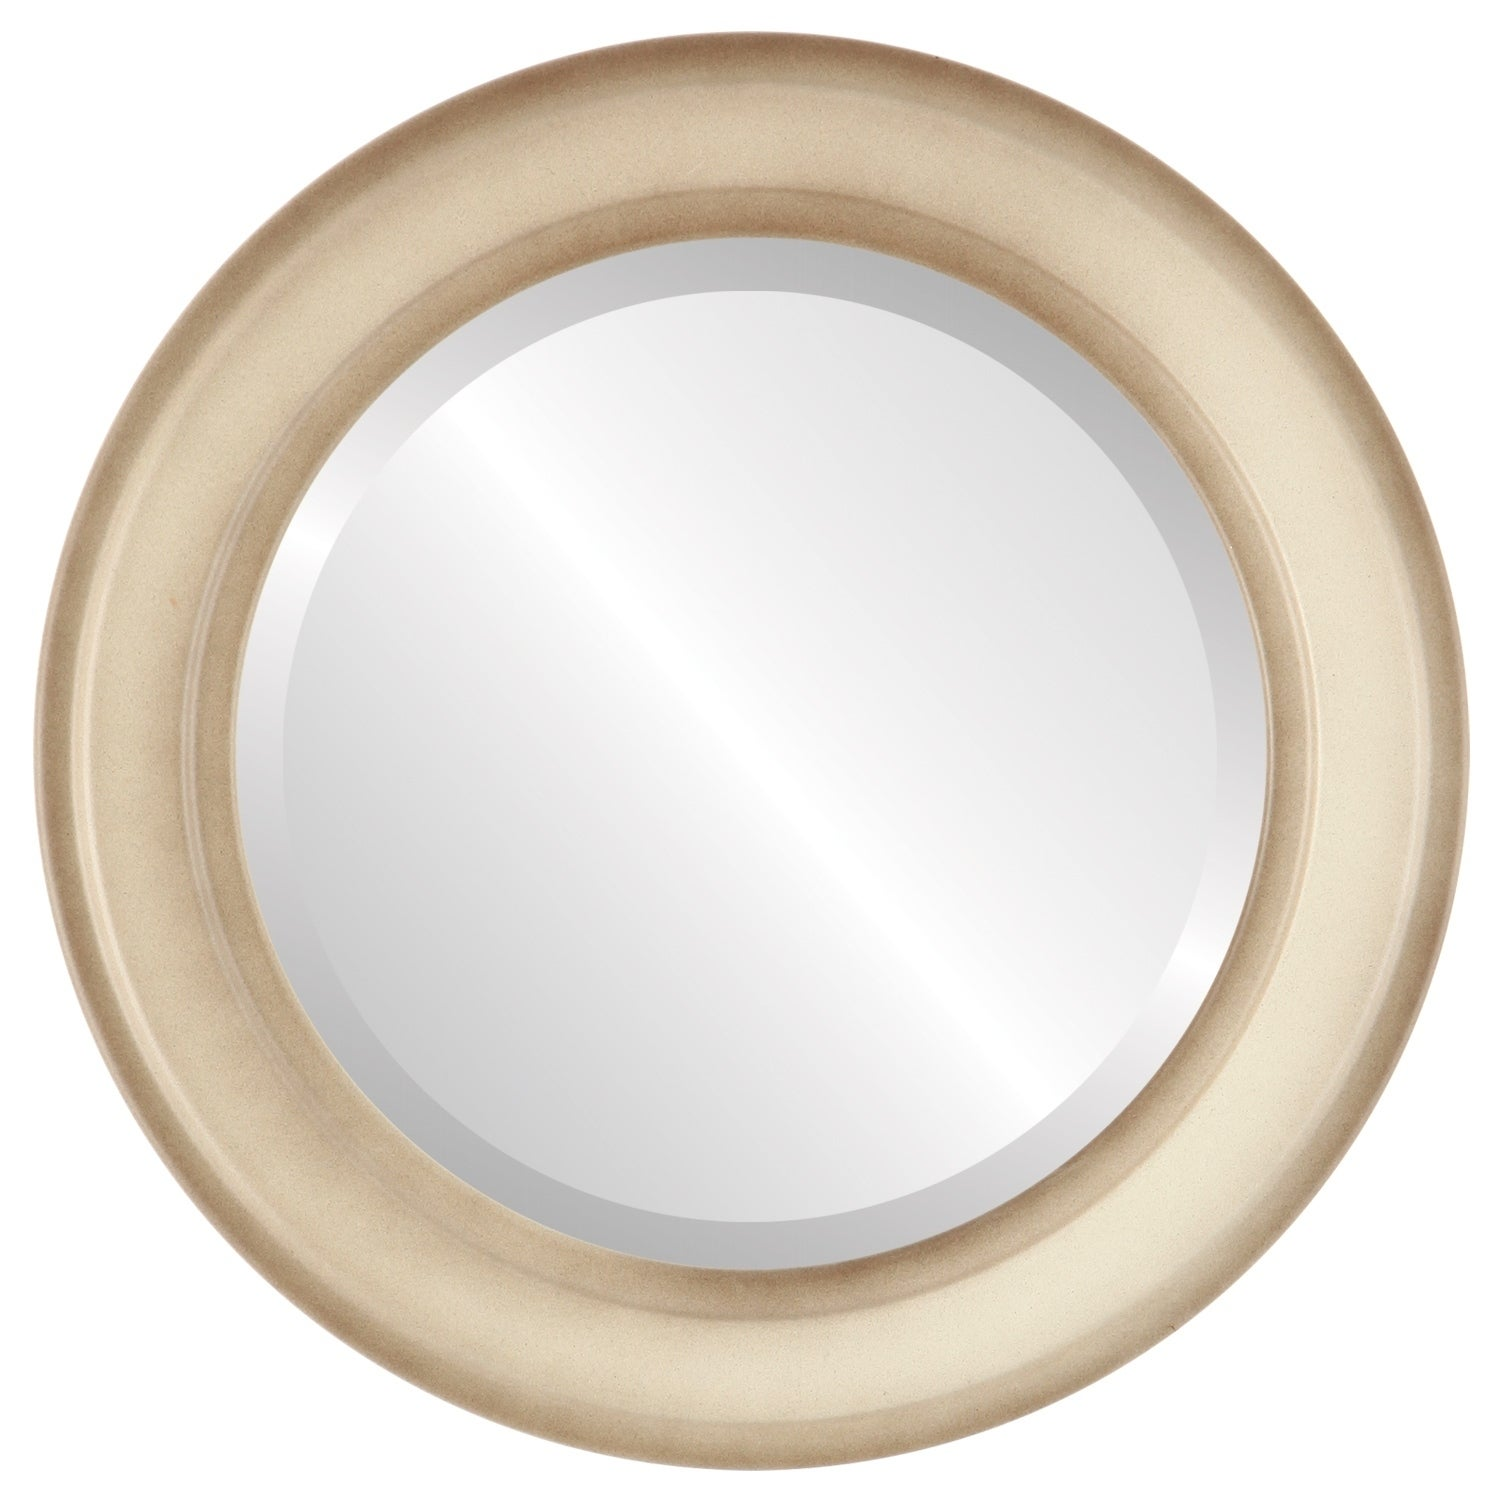 Wright Framed Round Mirror in Taupe (27x27)